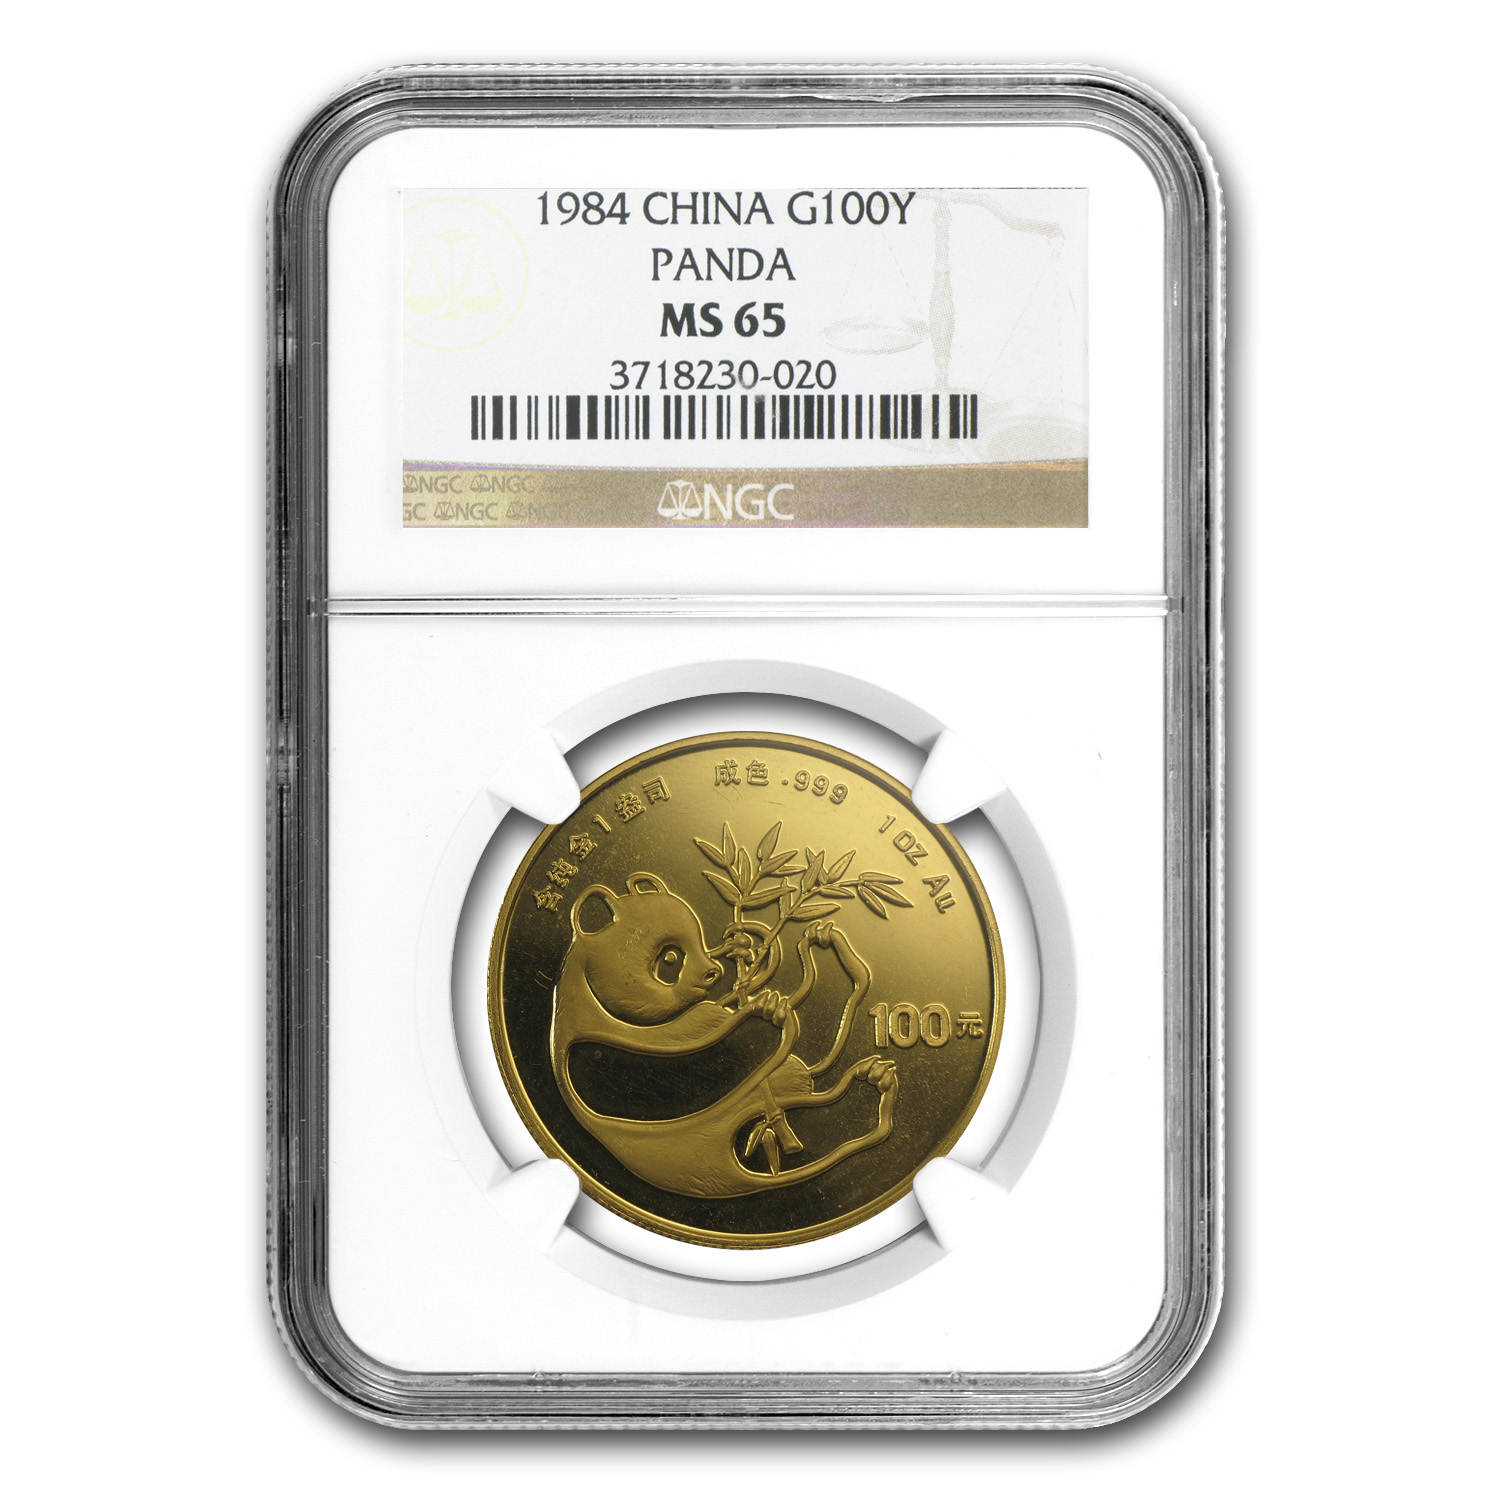 1984 China 1 oz Gold Panda MS-65 NGC